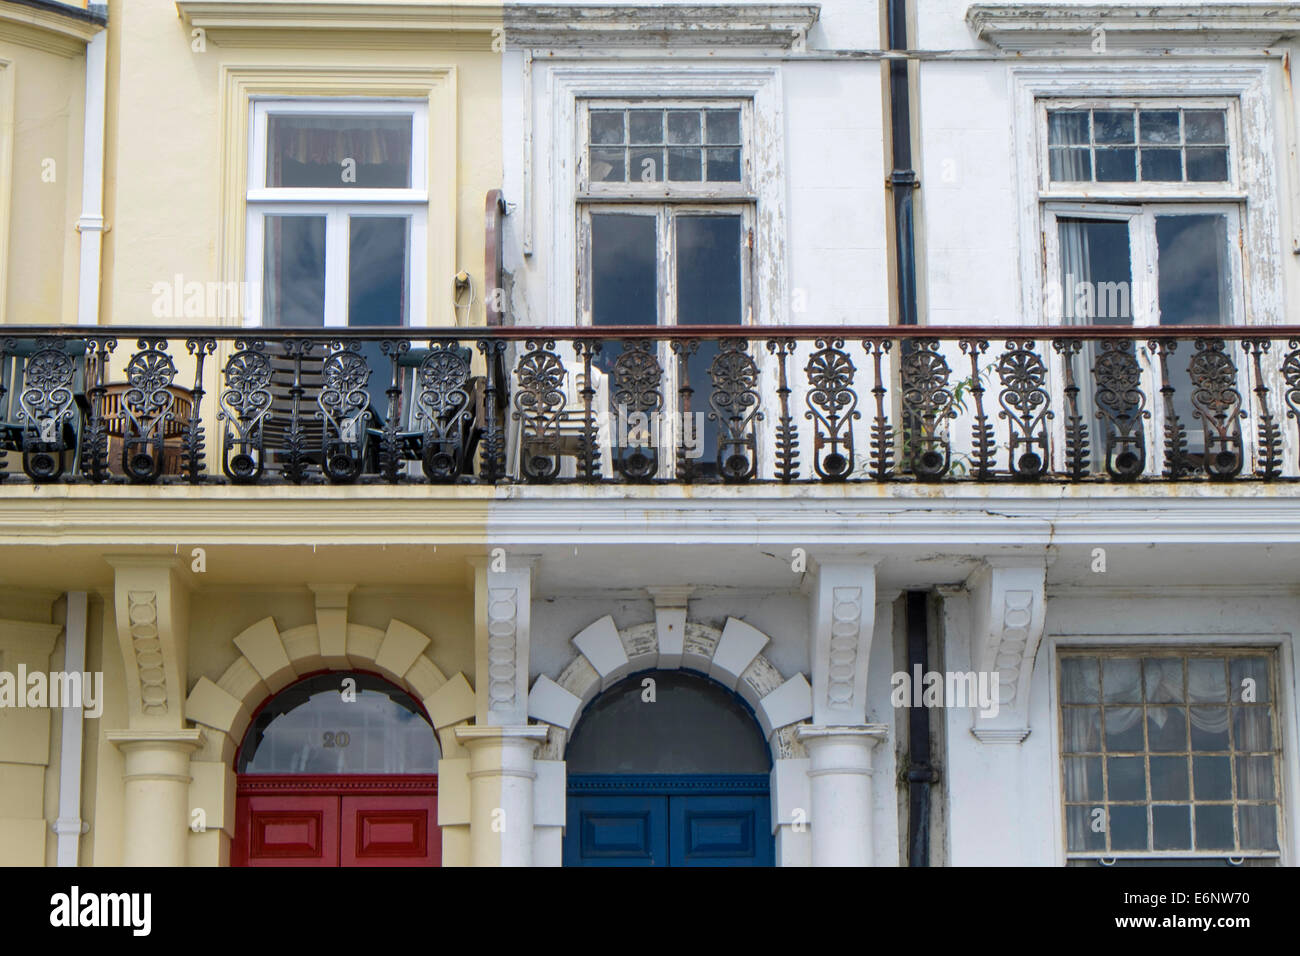 One refurbished property and one run down house on Plymouth Hoe, Plymouth, devon, England, UK - Stock Image